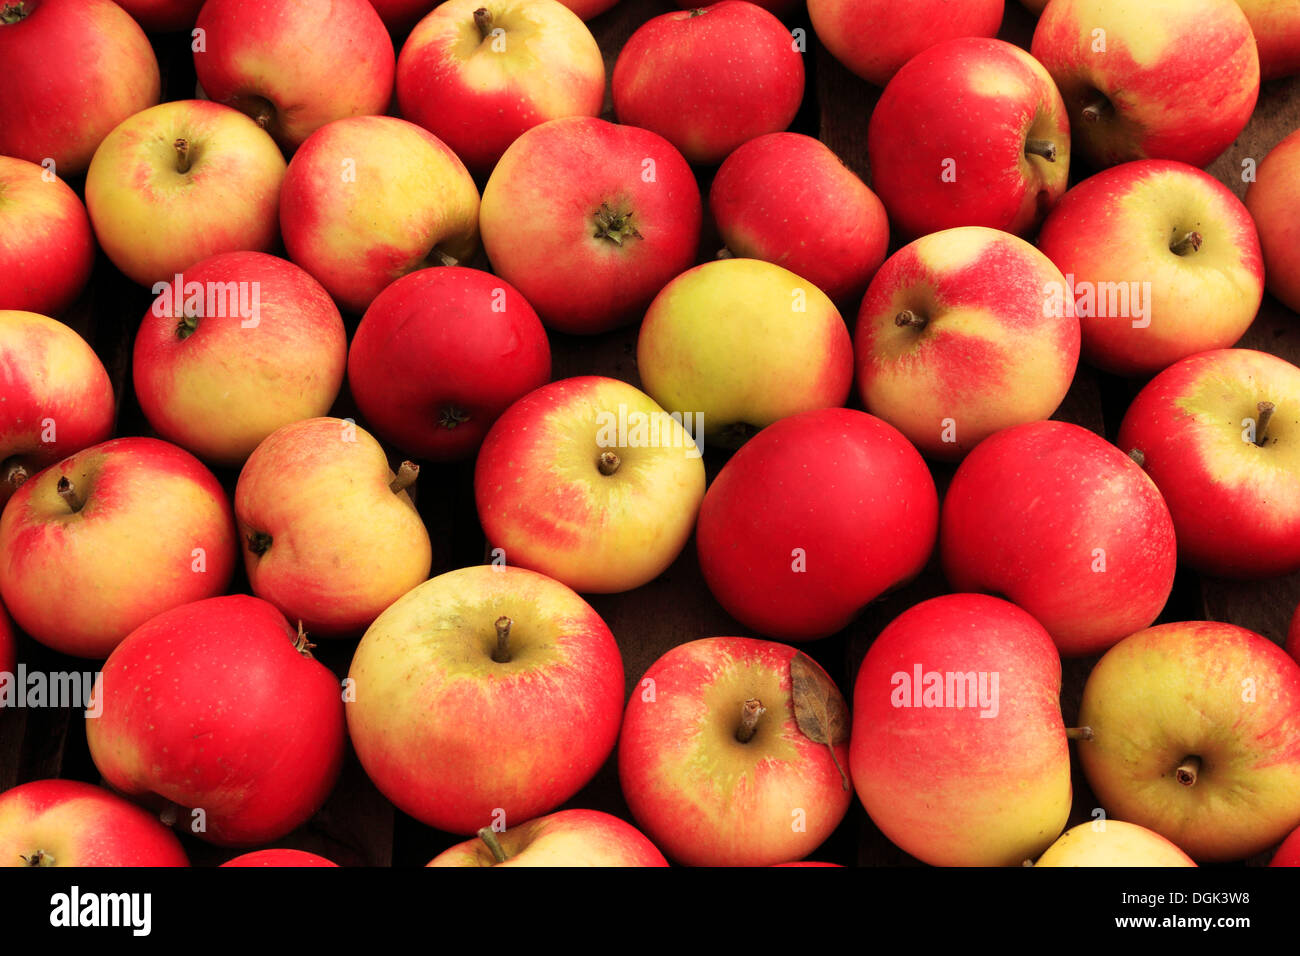 Apple 'Discovery',  malus domestica, apples variety varieties in farm shop display - Stock Image